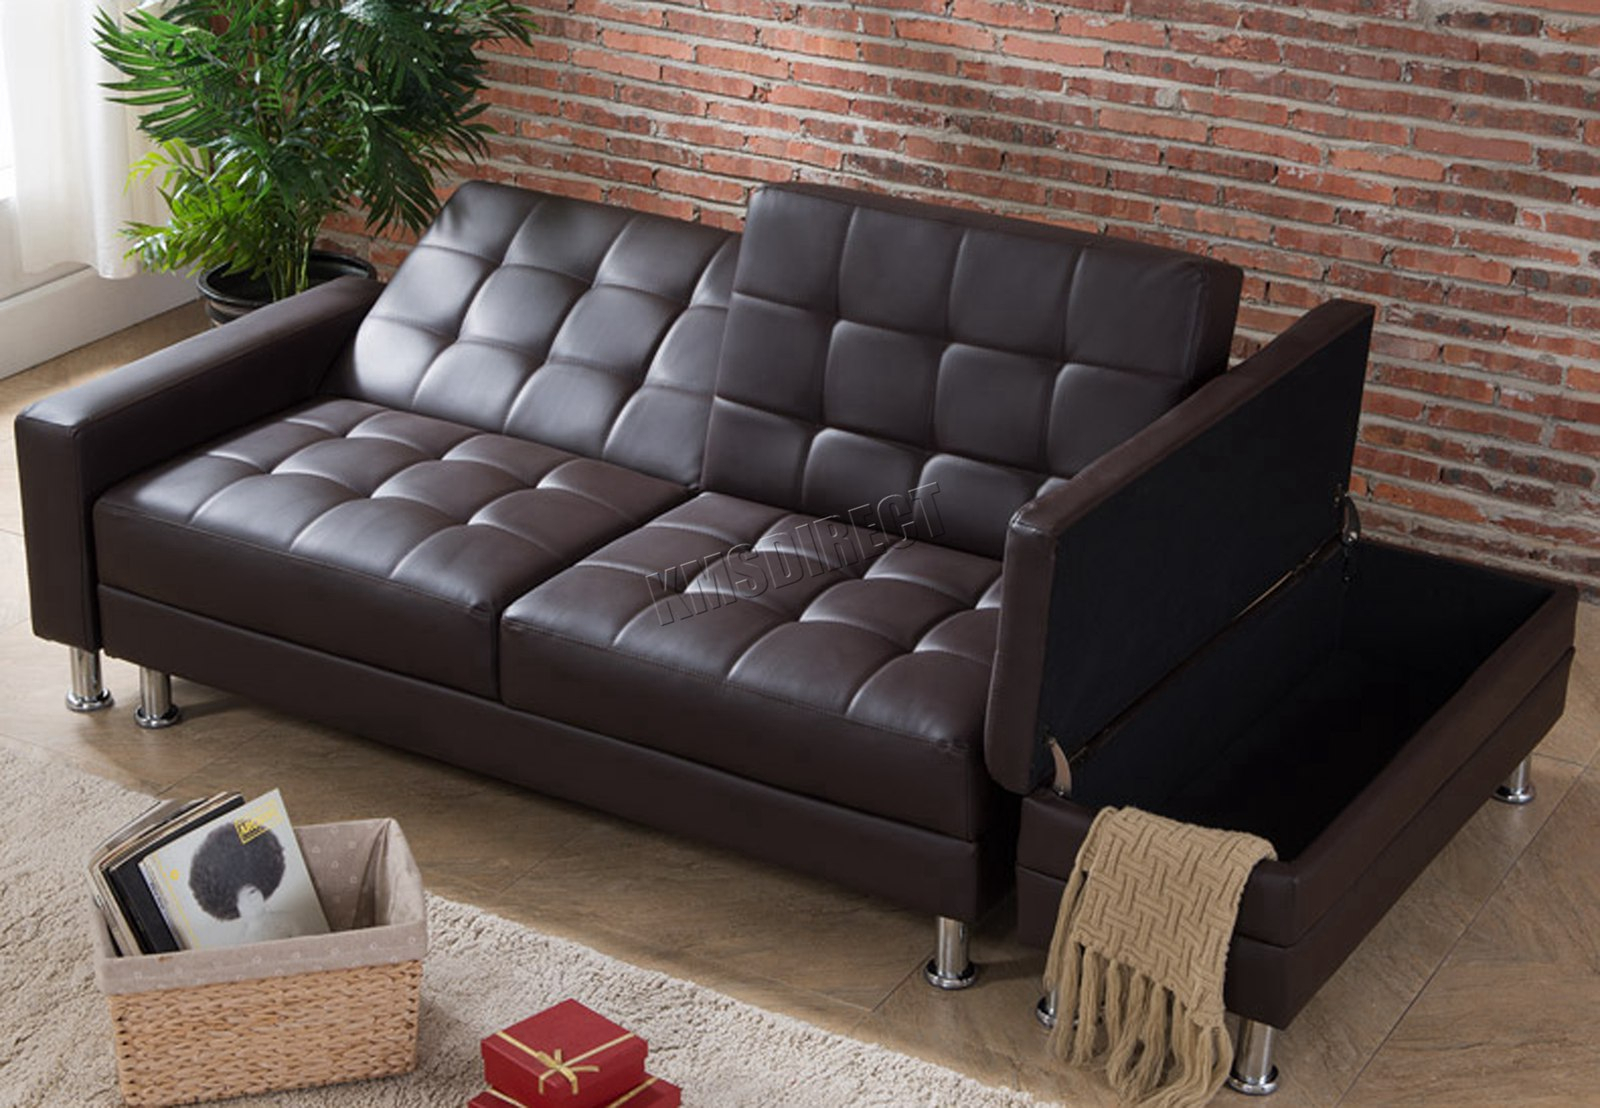 Westwood Pu Sofa Bed With Storage 3 Seater Guest Sleeper With Regard To Hartford Storage Sectional Futon Sofas (View 6 of 15)